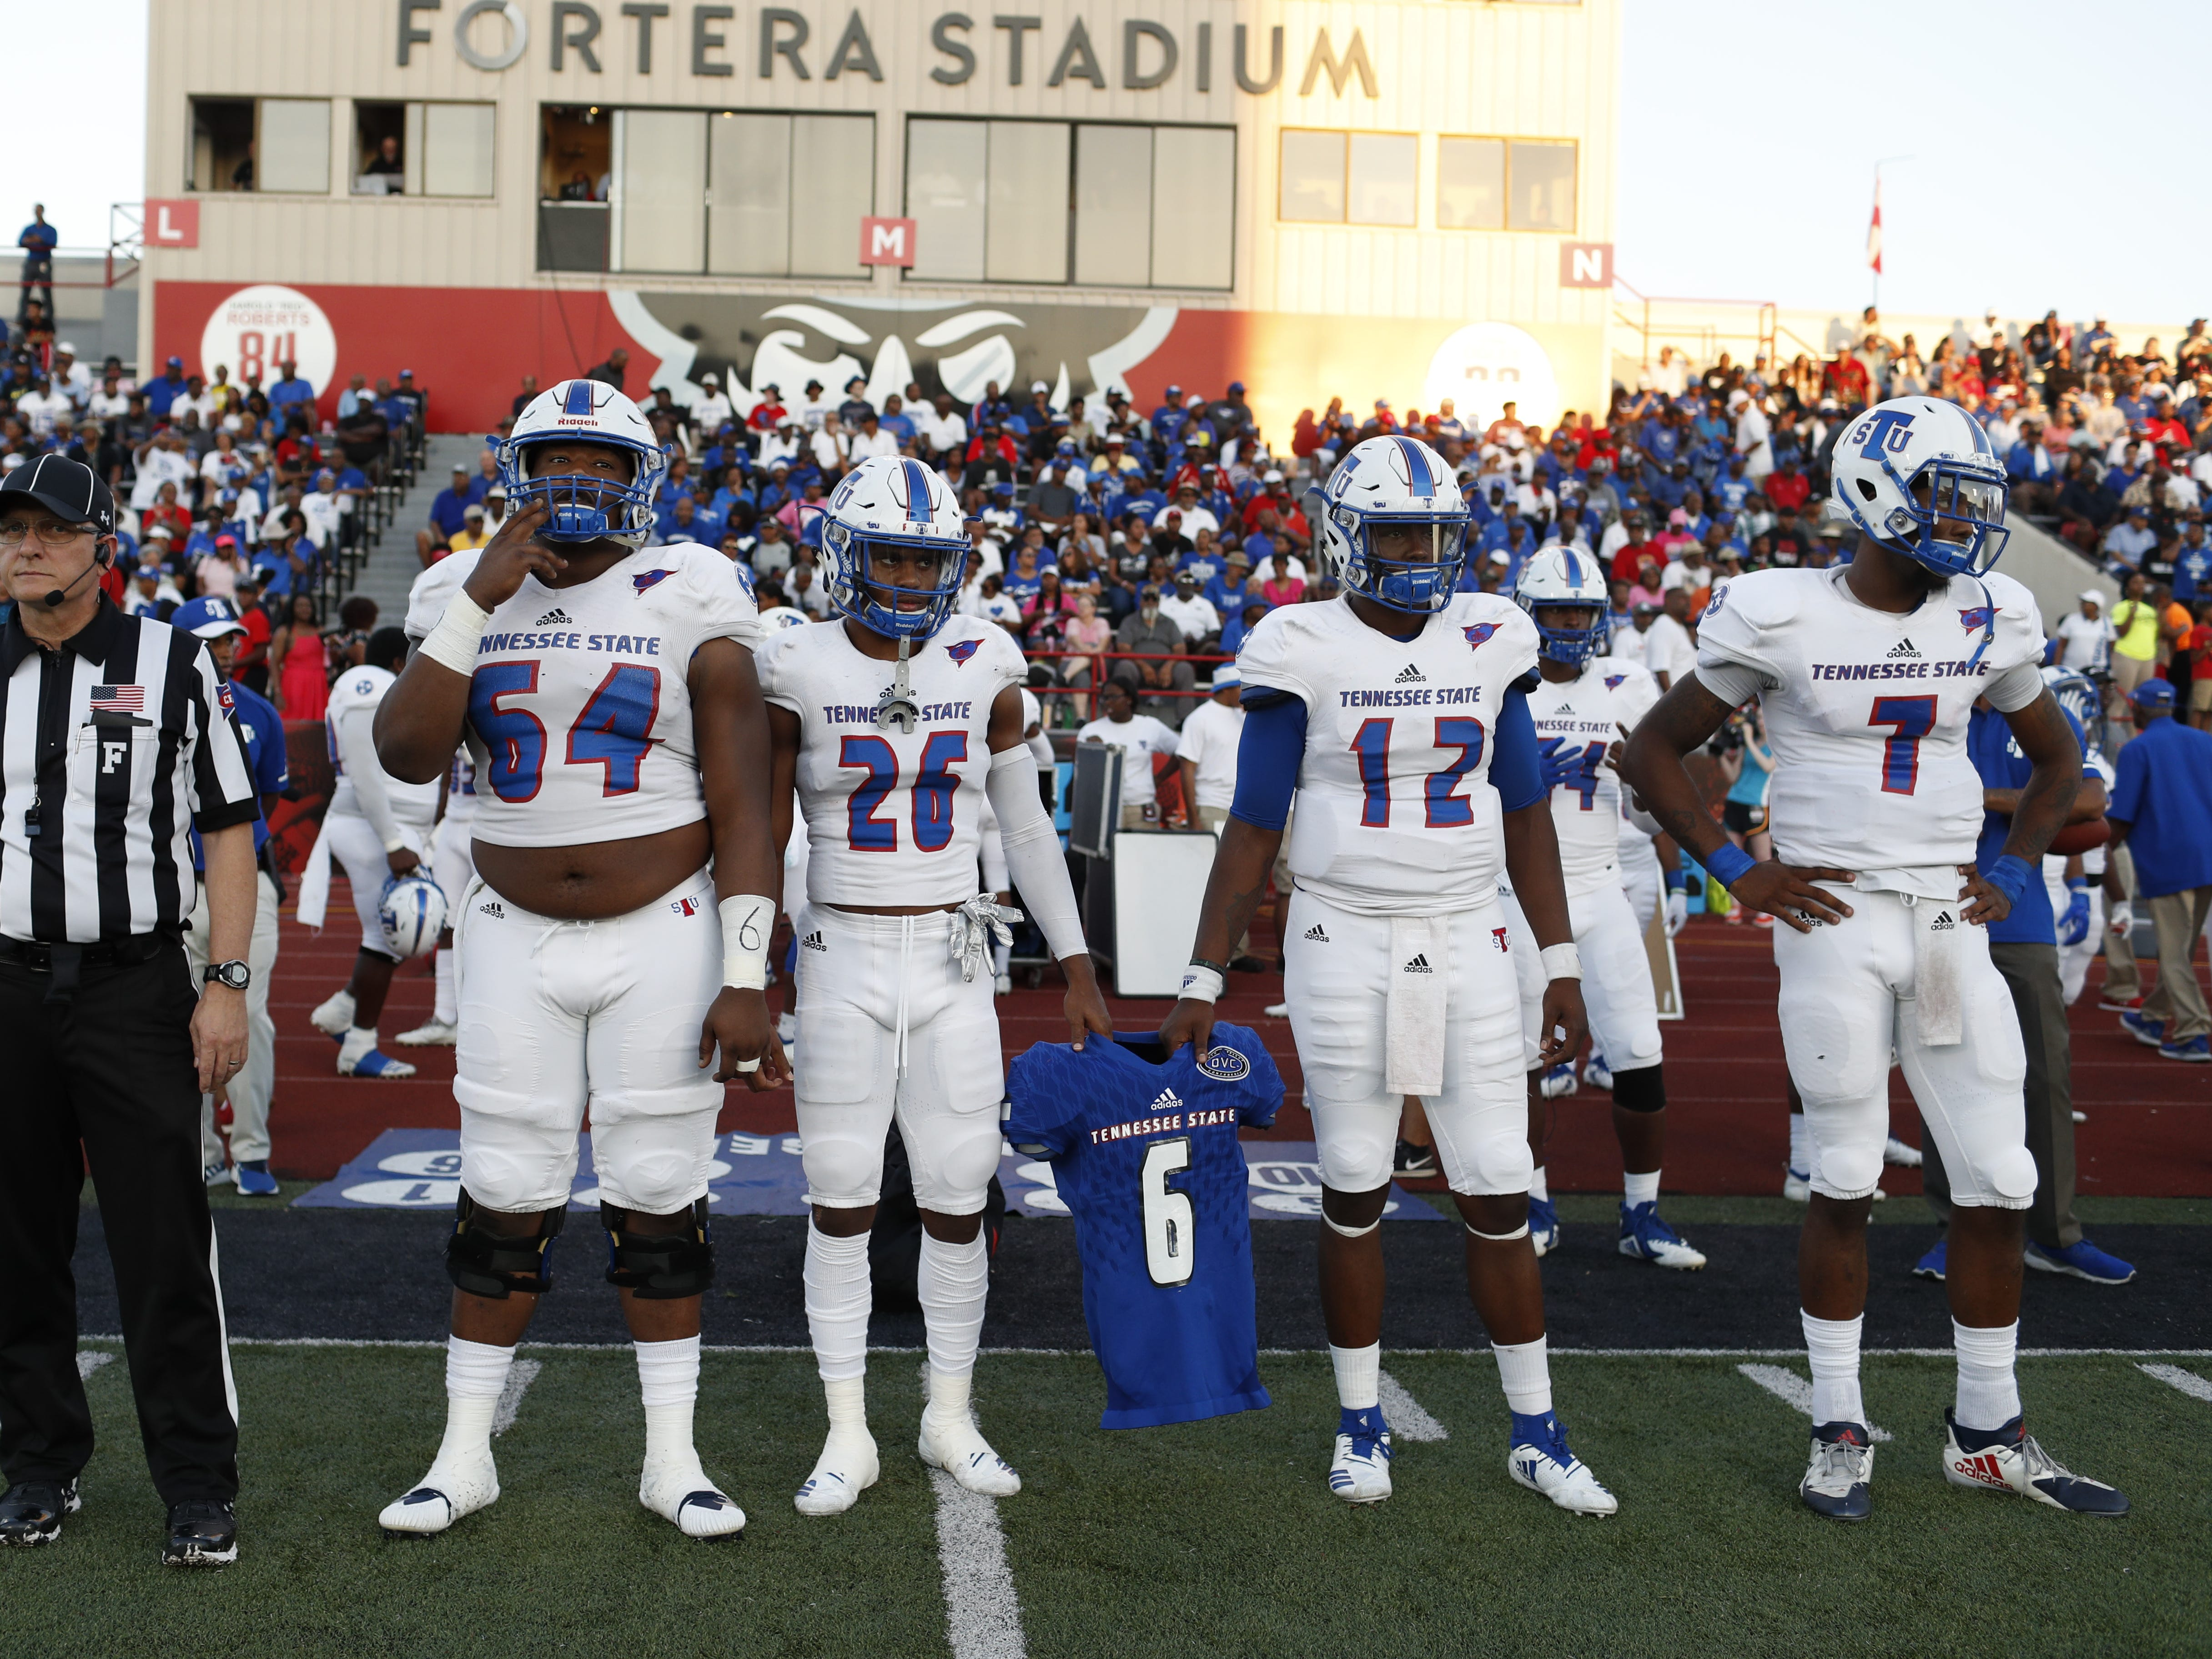 Tennessee State's captains hold the shoulder pads and jersey of linebacker Christion Abercrombie before the Tigers' game at Austin Peay on Saturday, October 6, 2018.